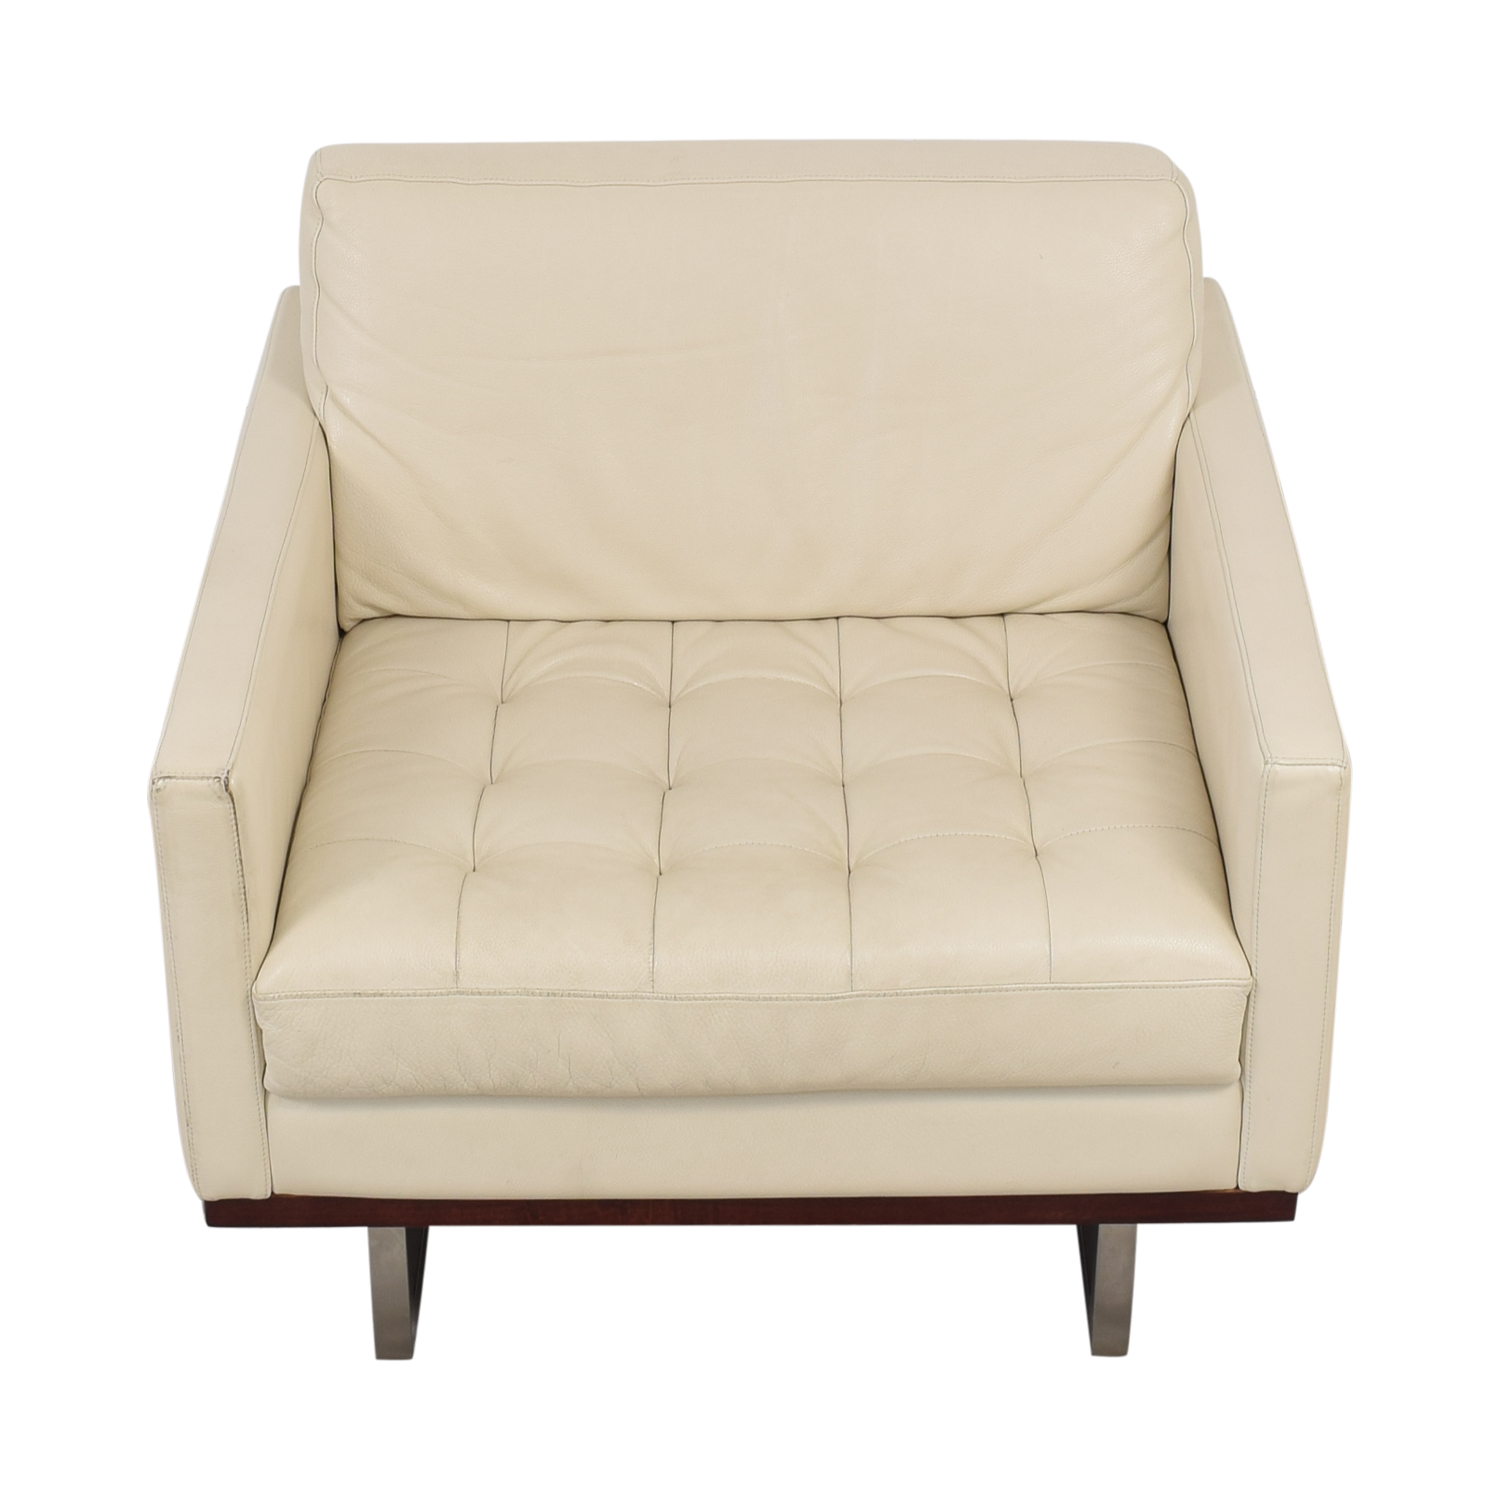 American Leather American Leather Mid Century Armchair coupon